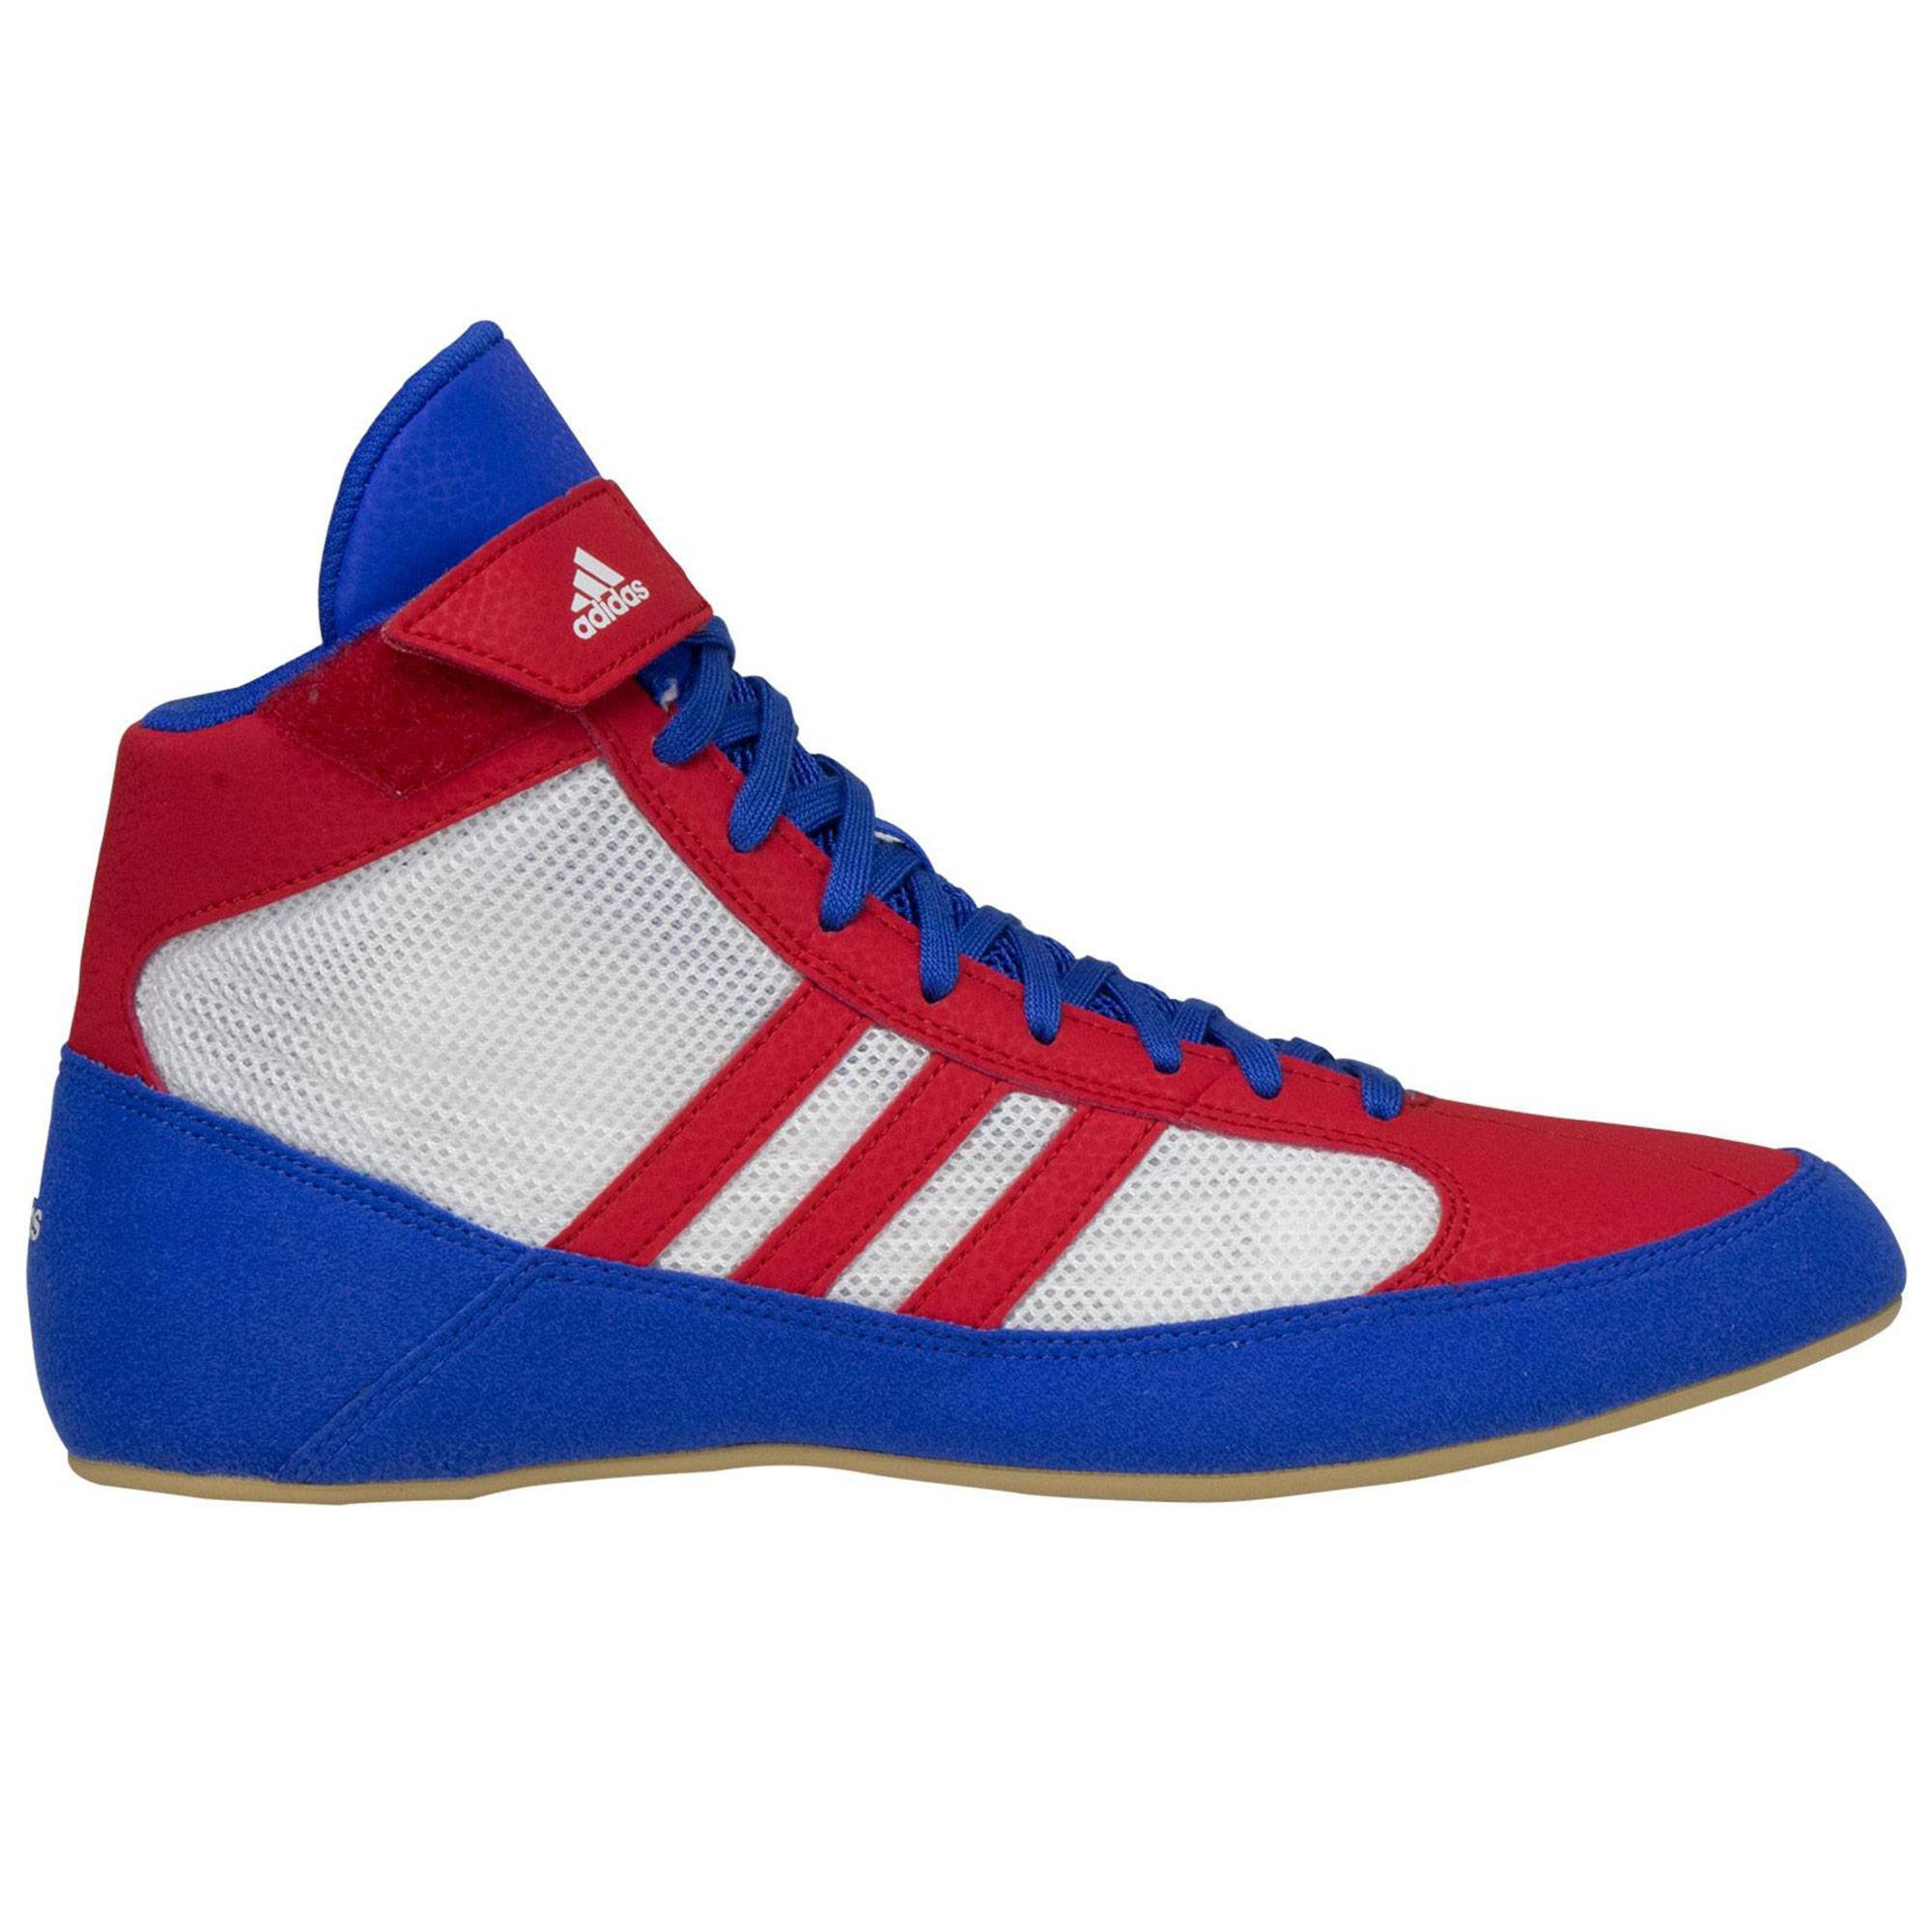 adidas HVC Wrestling Shoes Blue/Red/White Size 10